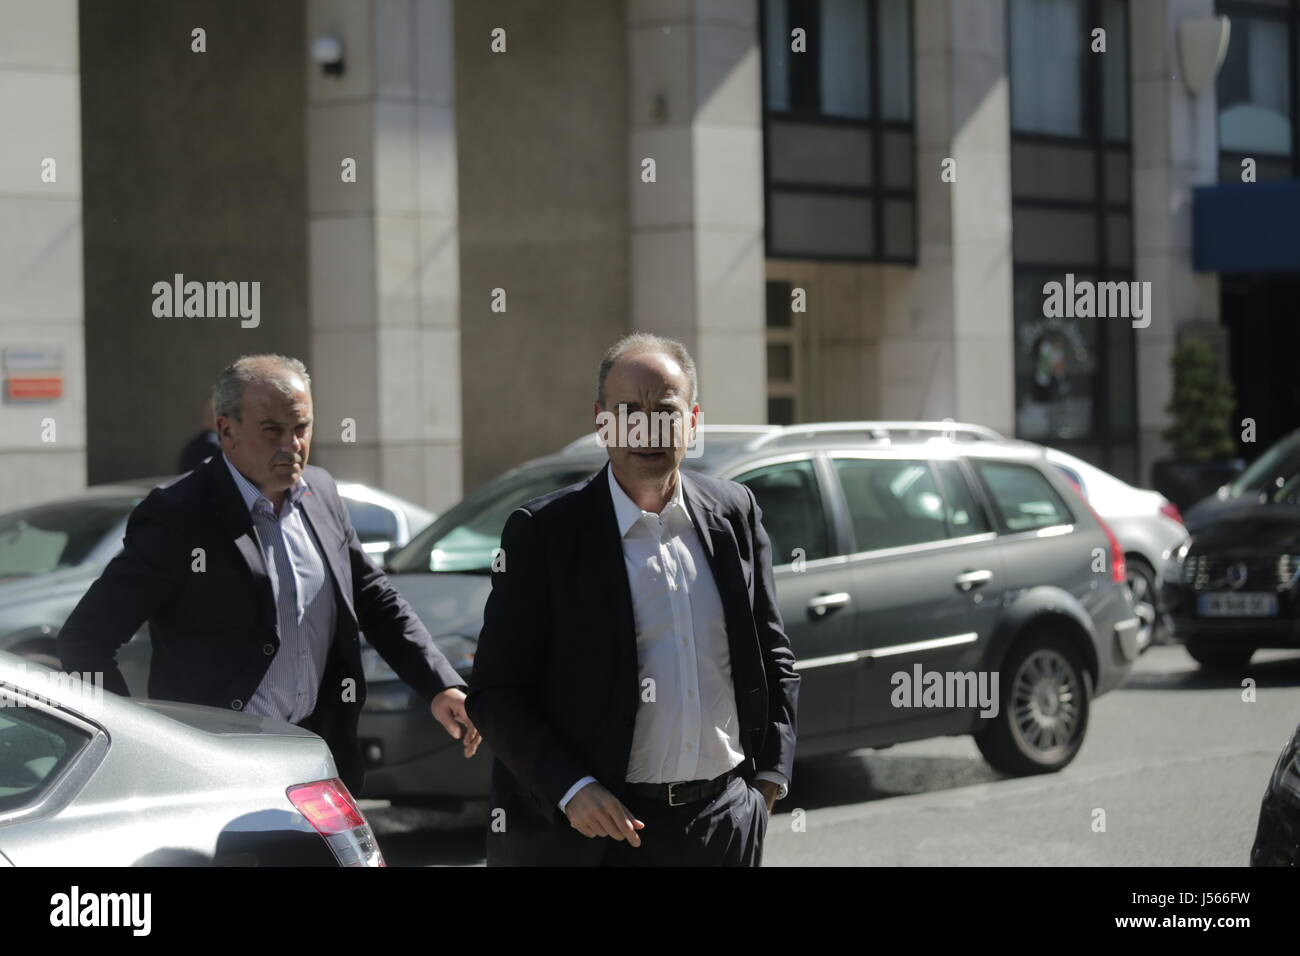 Arrival of the leaders of the party The Republicans at their headquarters  -  16/05/2017  -  France / Paris  - - Stock Image